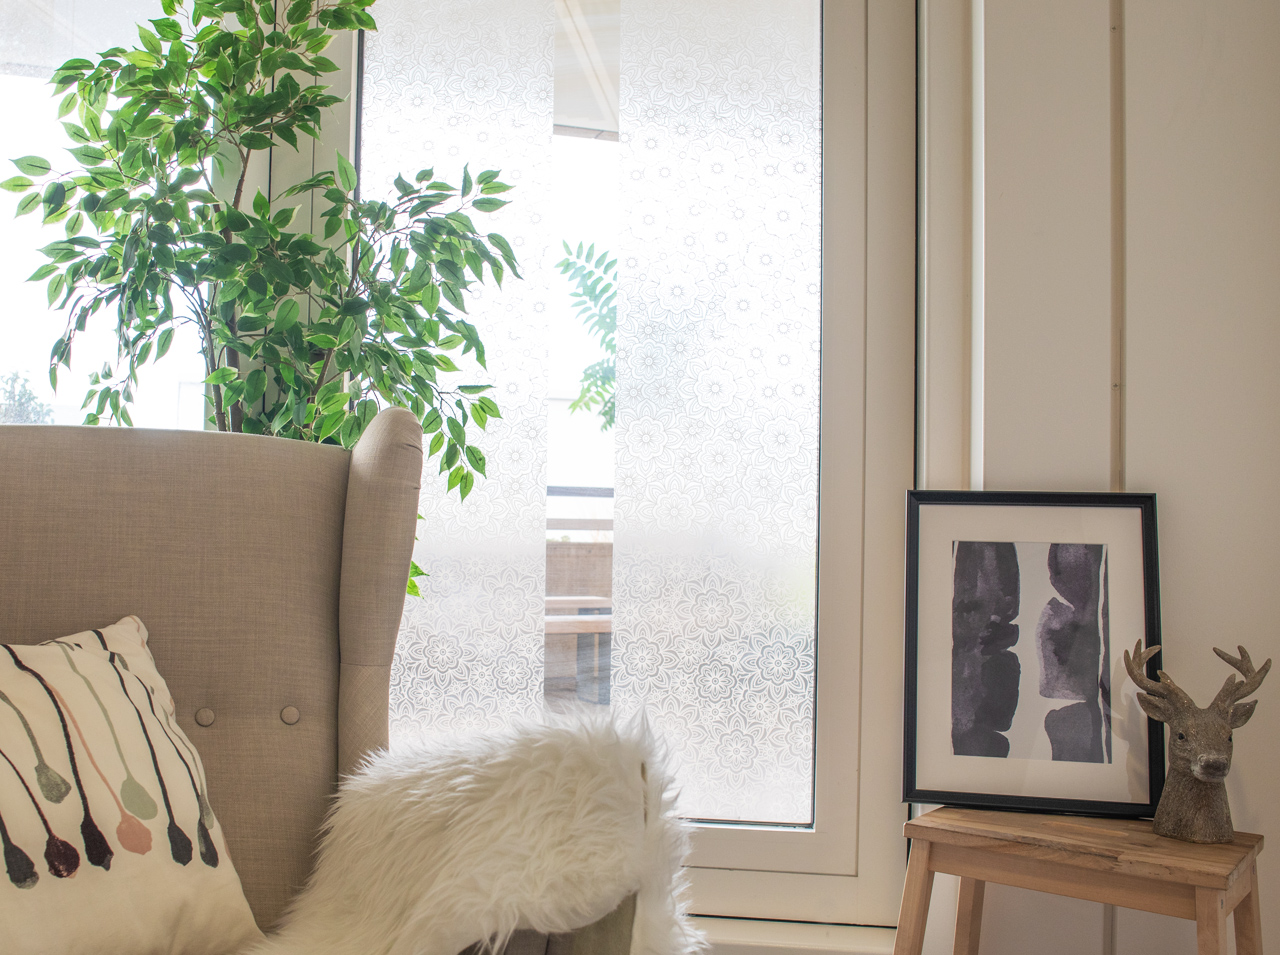 d-c-fix  The best for your windows: decoration and privacy in one!